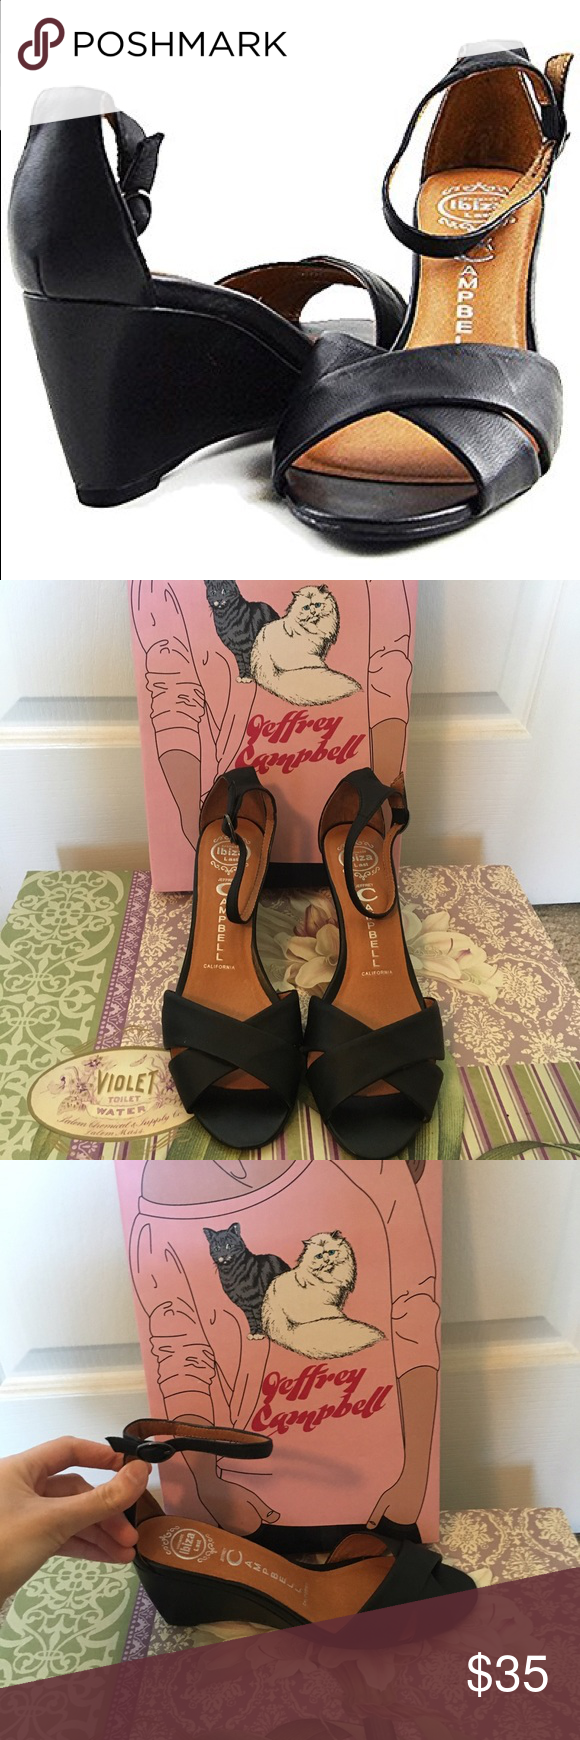 NWOT Jeffrey Campbell Trudeau Wedges Never worn, adorable wedges with a skinny ankle strap. Jeffrey Campbell Shoes Wedges